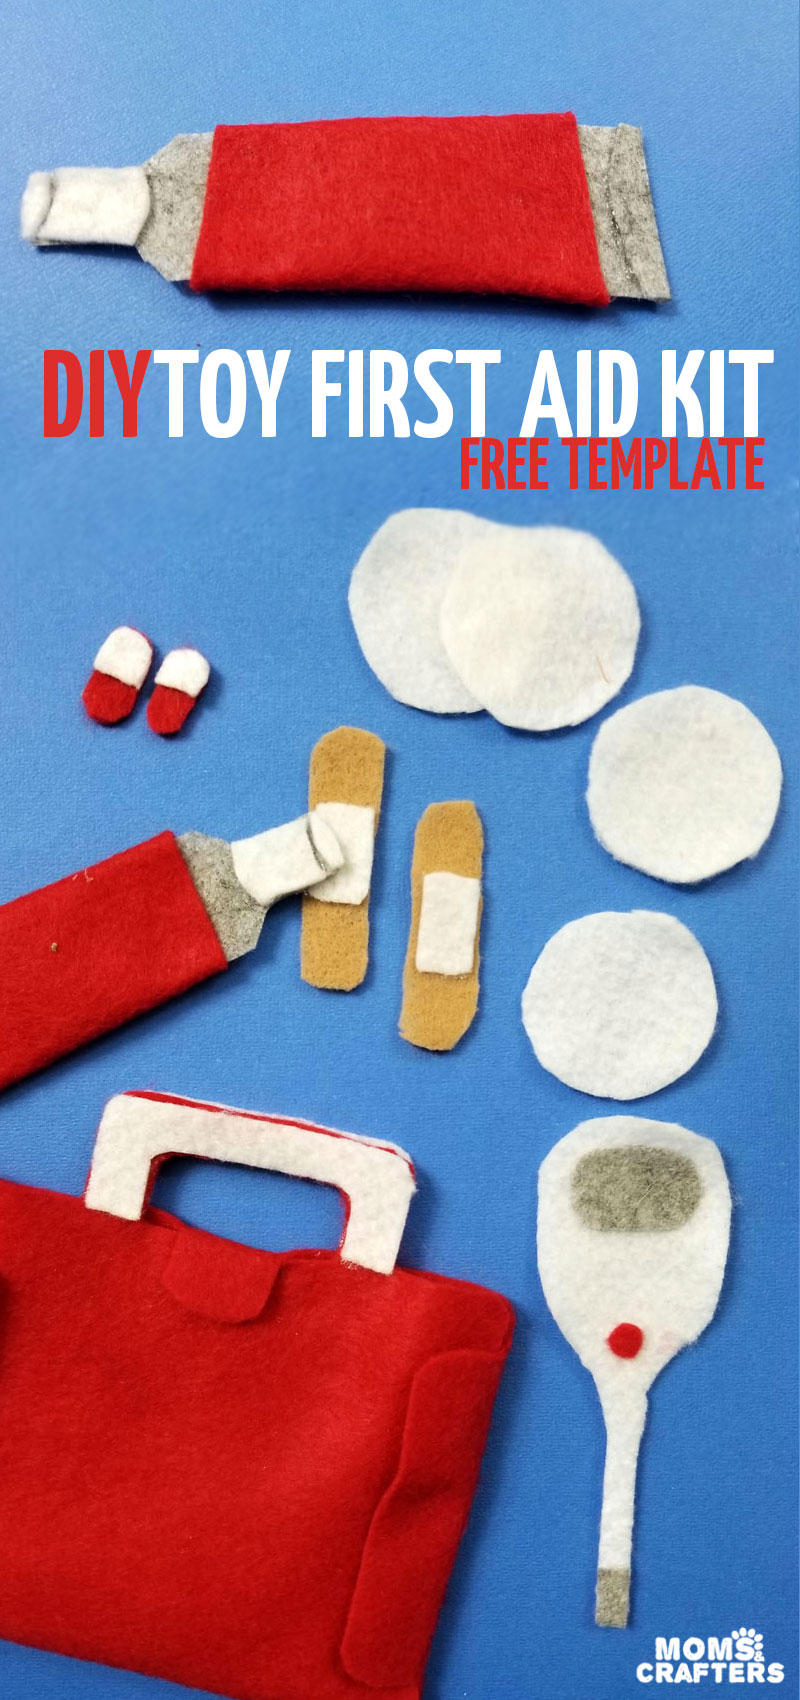 DIY toy first aid kit - make your own no-sew first aid set to use with doll play! Perfect for July 4th and independence day and teaching your child about summer time injuries! #july4th #summer #diytoy #momcraft